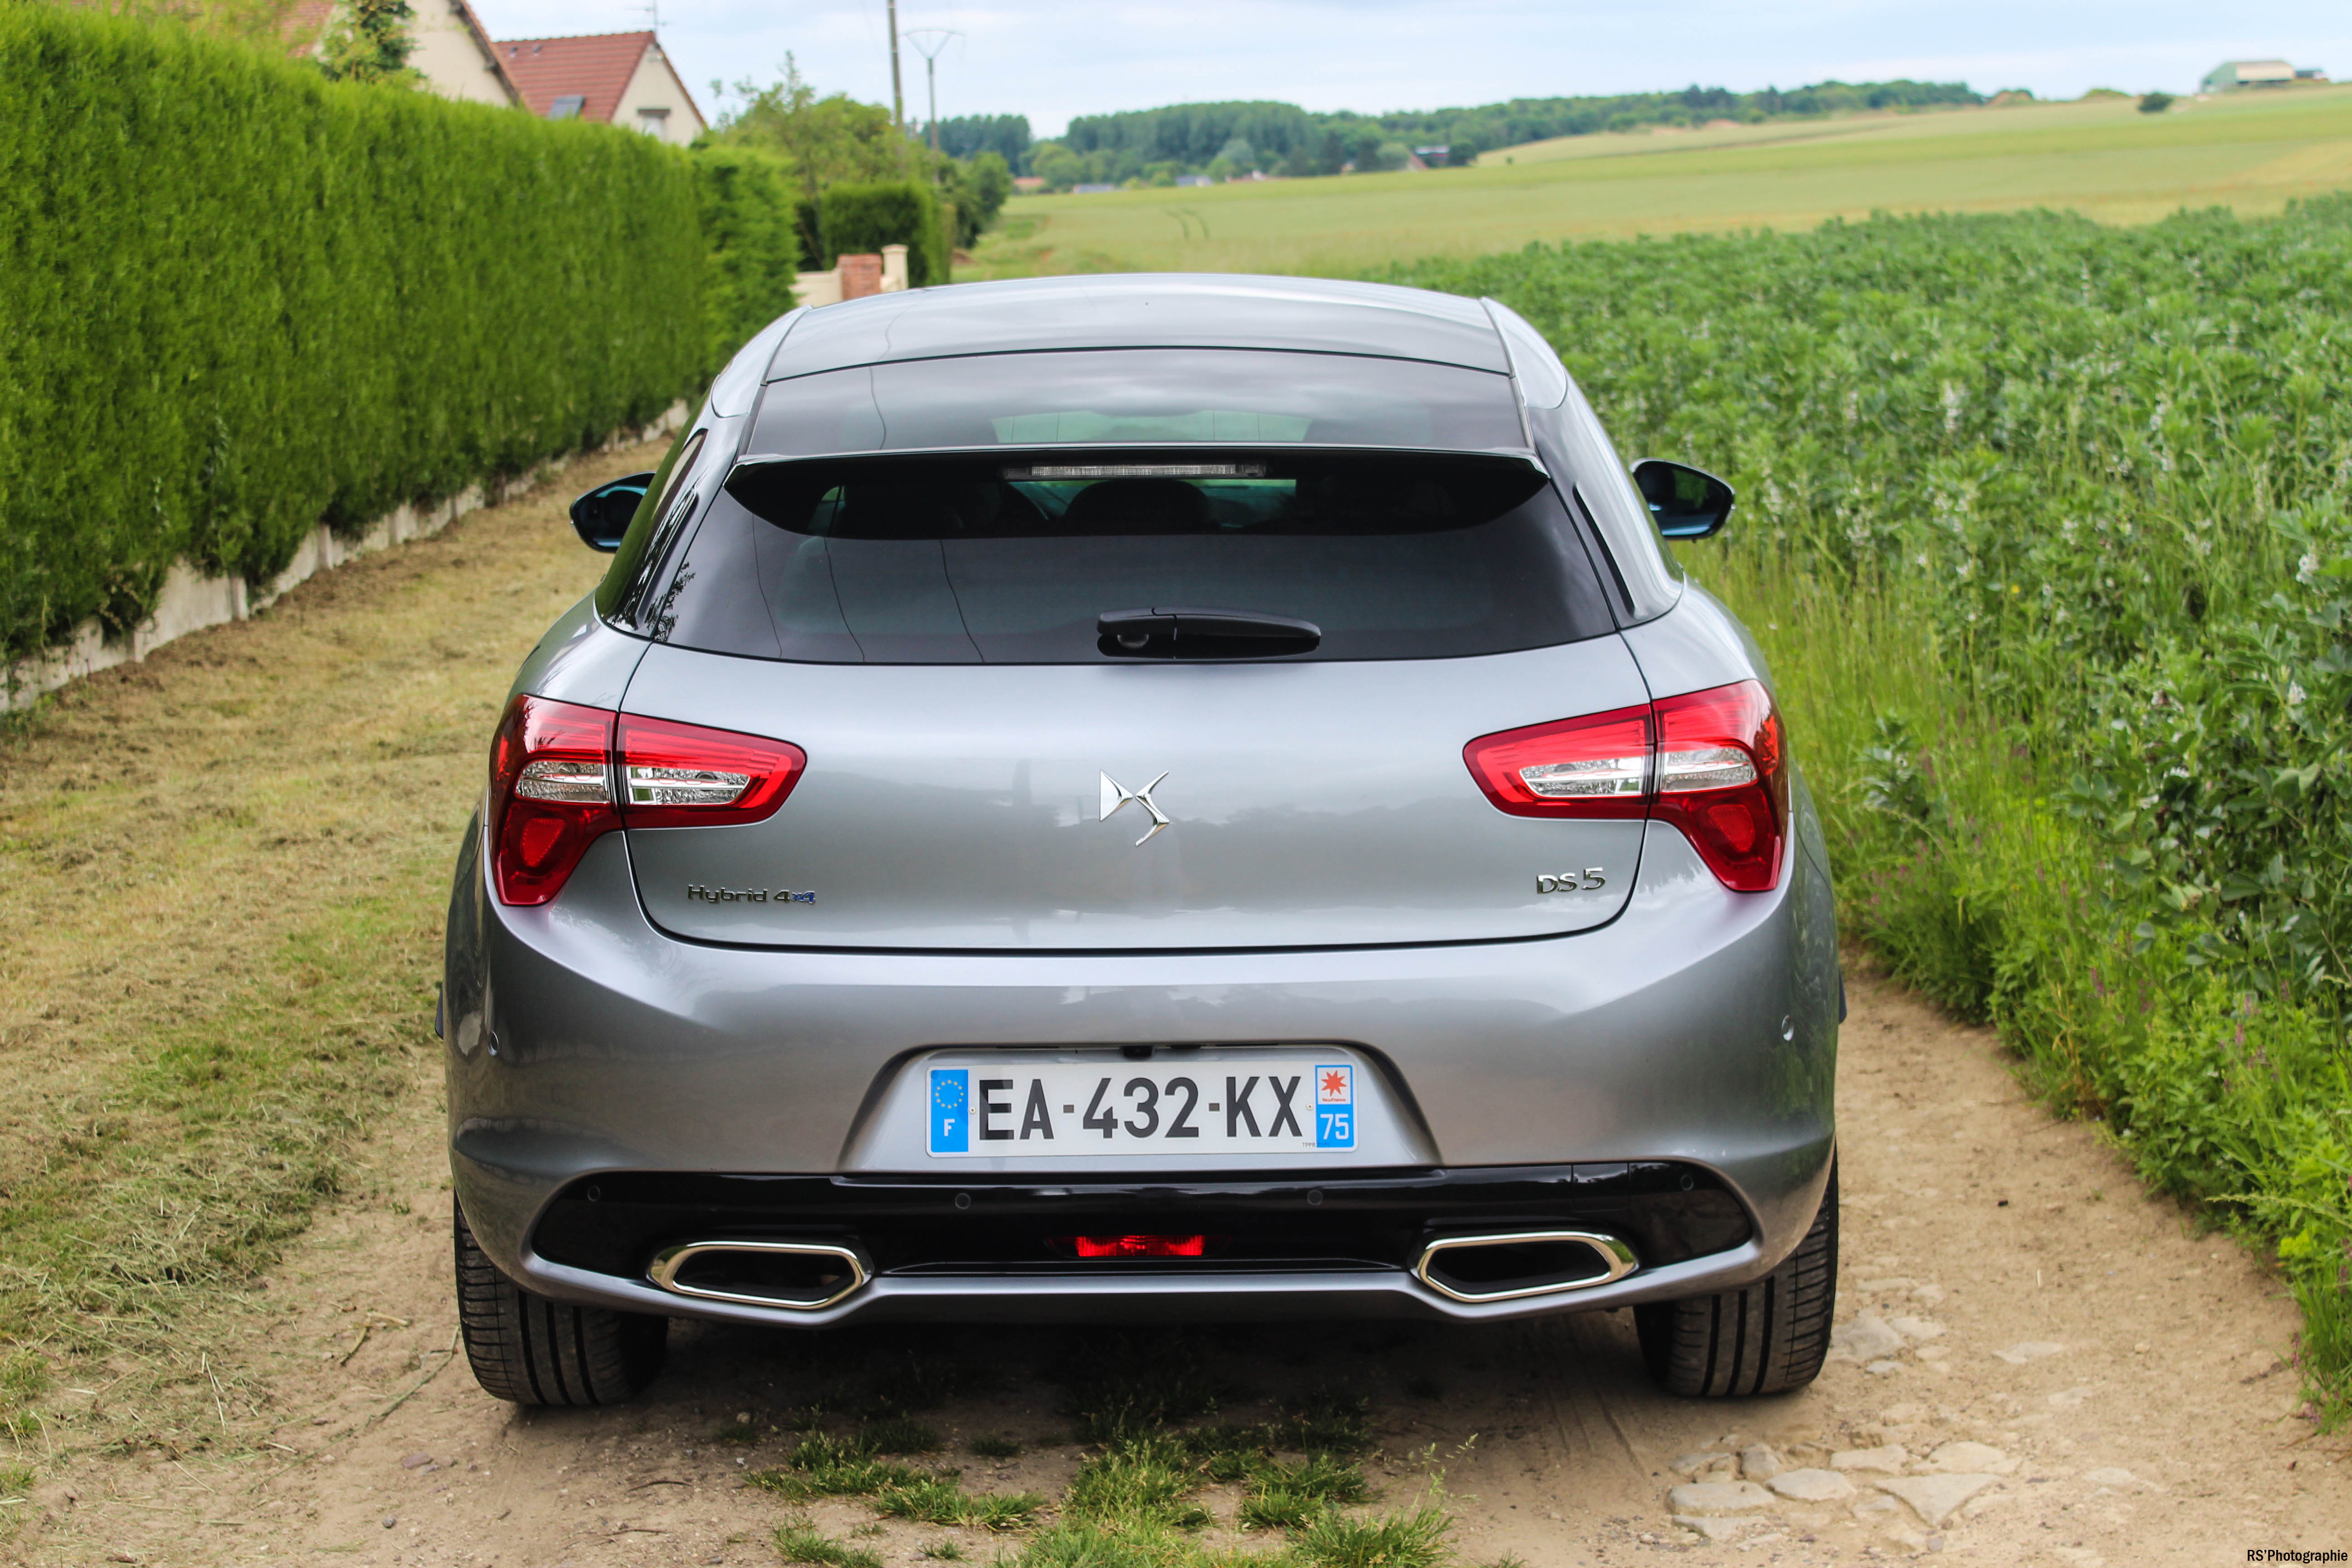 ds5hybrid1-ds5-hybrid4-arriere-rear-Arnaud Demasier-RSPhotographie